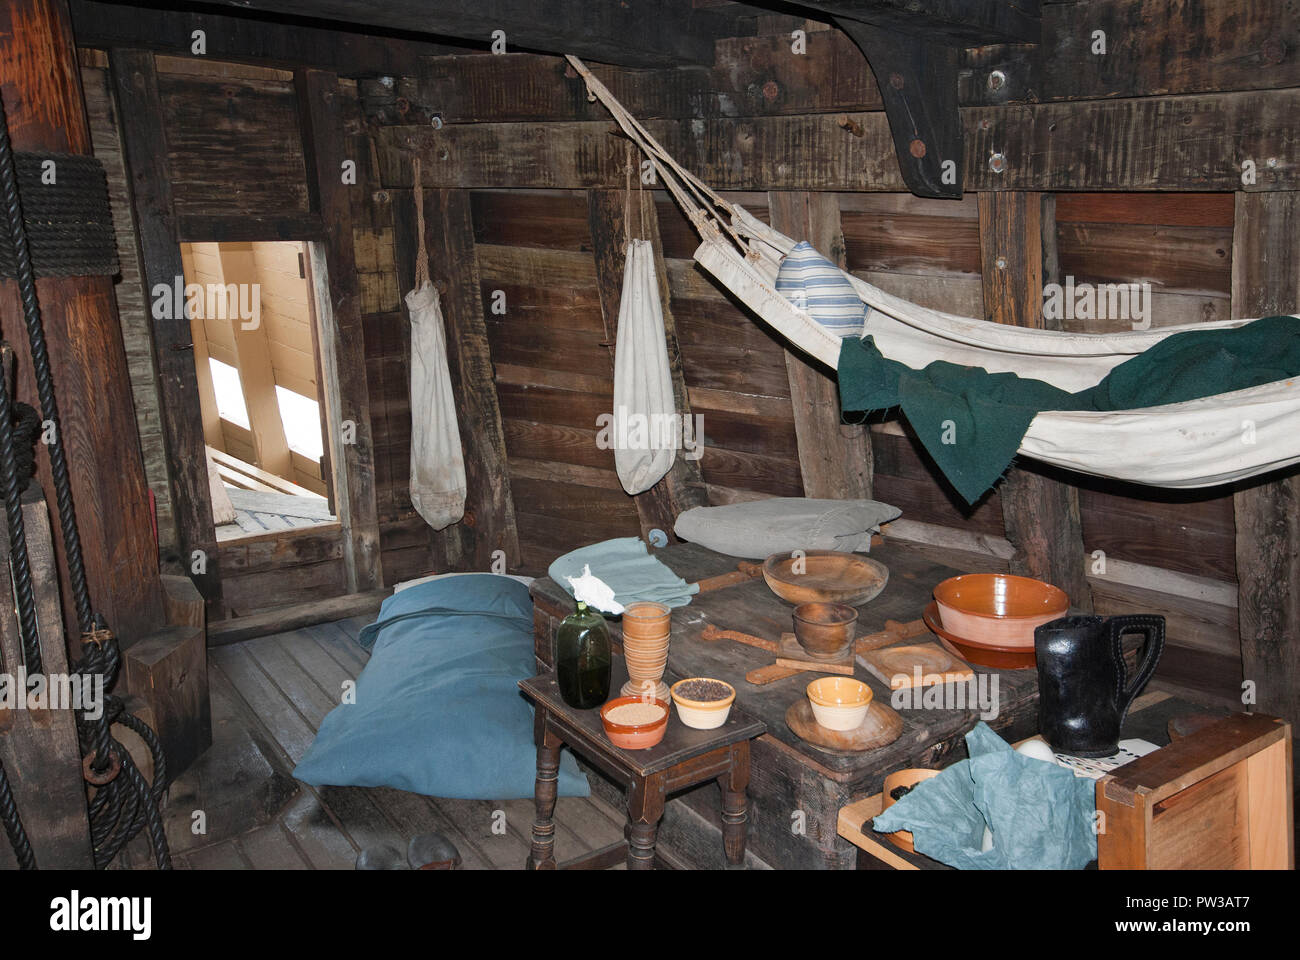 Ein Zimmer der Mayflower II Schiff, Replik der ursprünglichen Mayflower Schiff, Plymouth, Plymouth County, Massachusetts, USA Stockbild